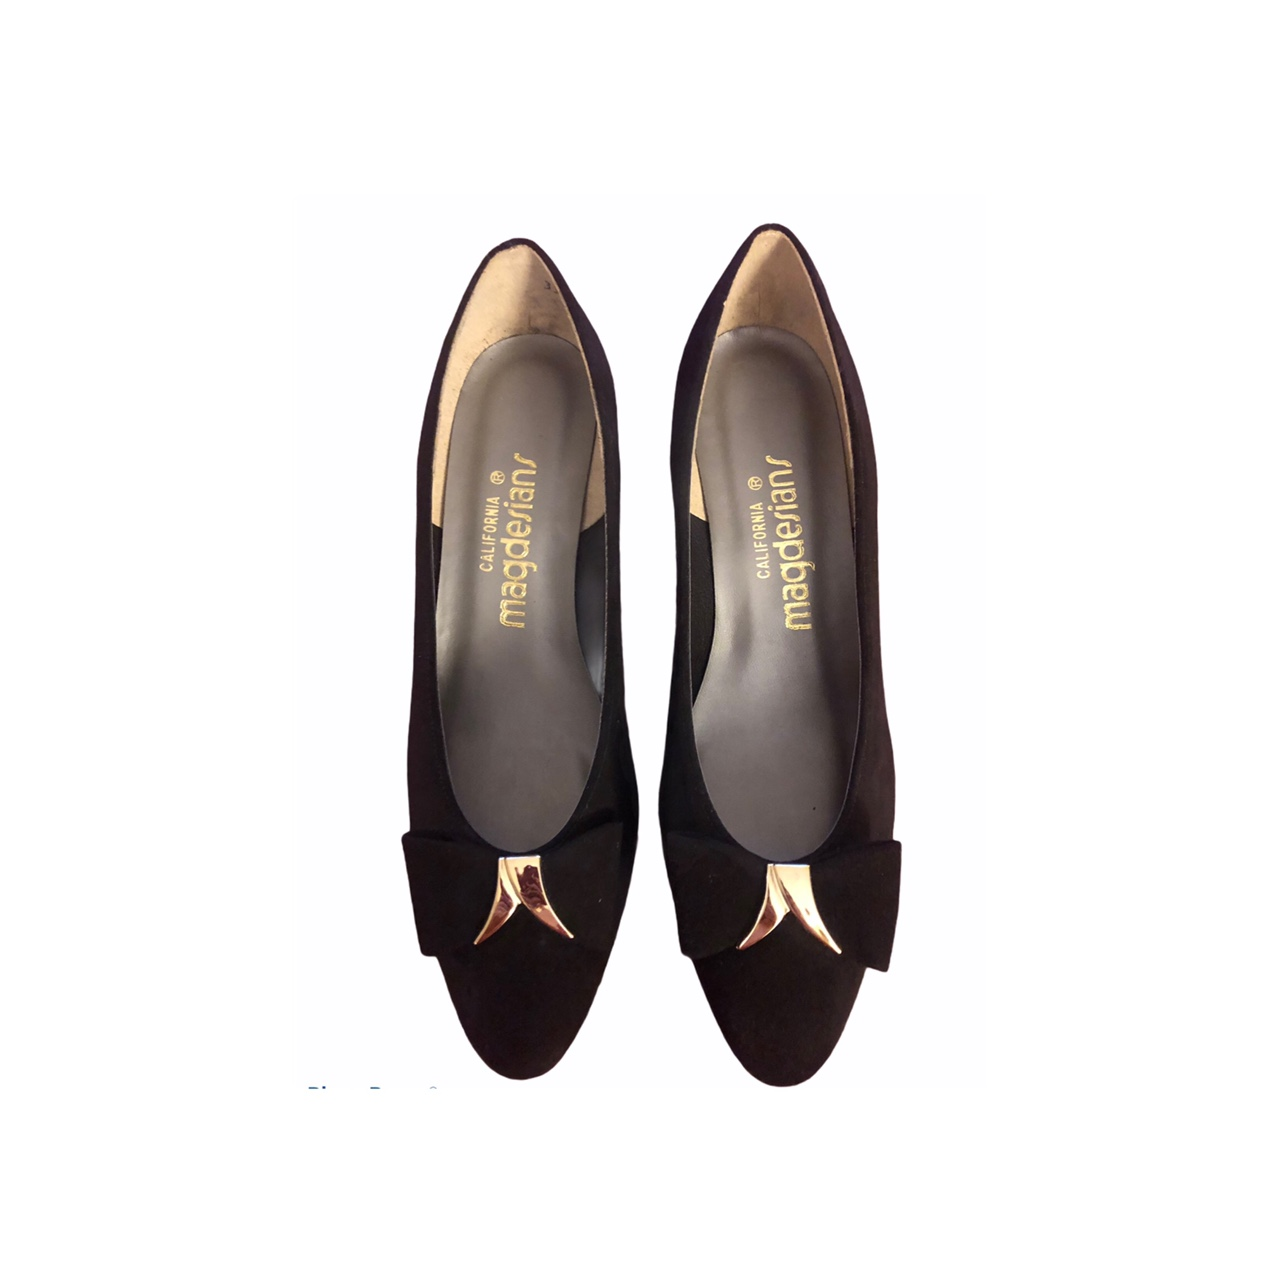 Product Image 1 - California Magdesian Shoes  Vintage Never worn